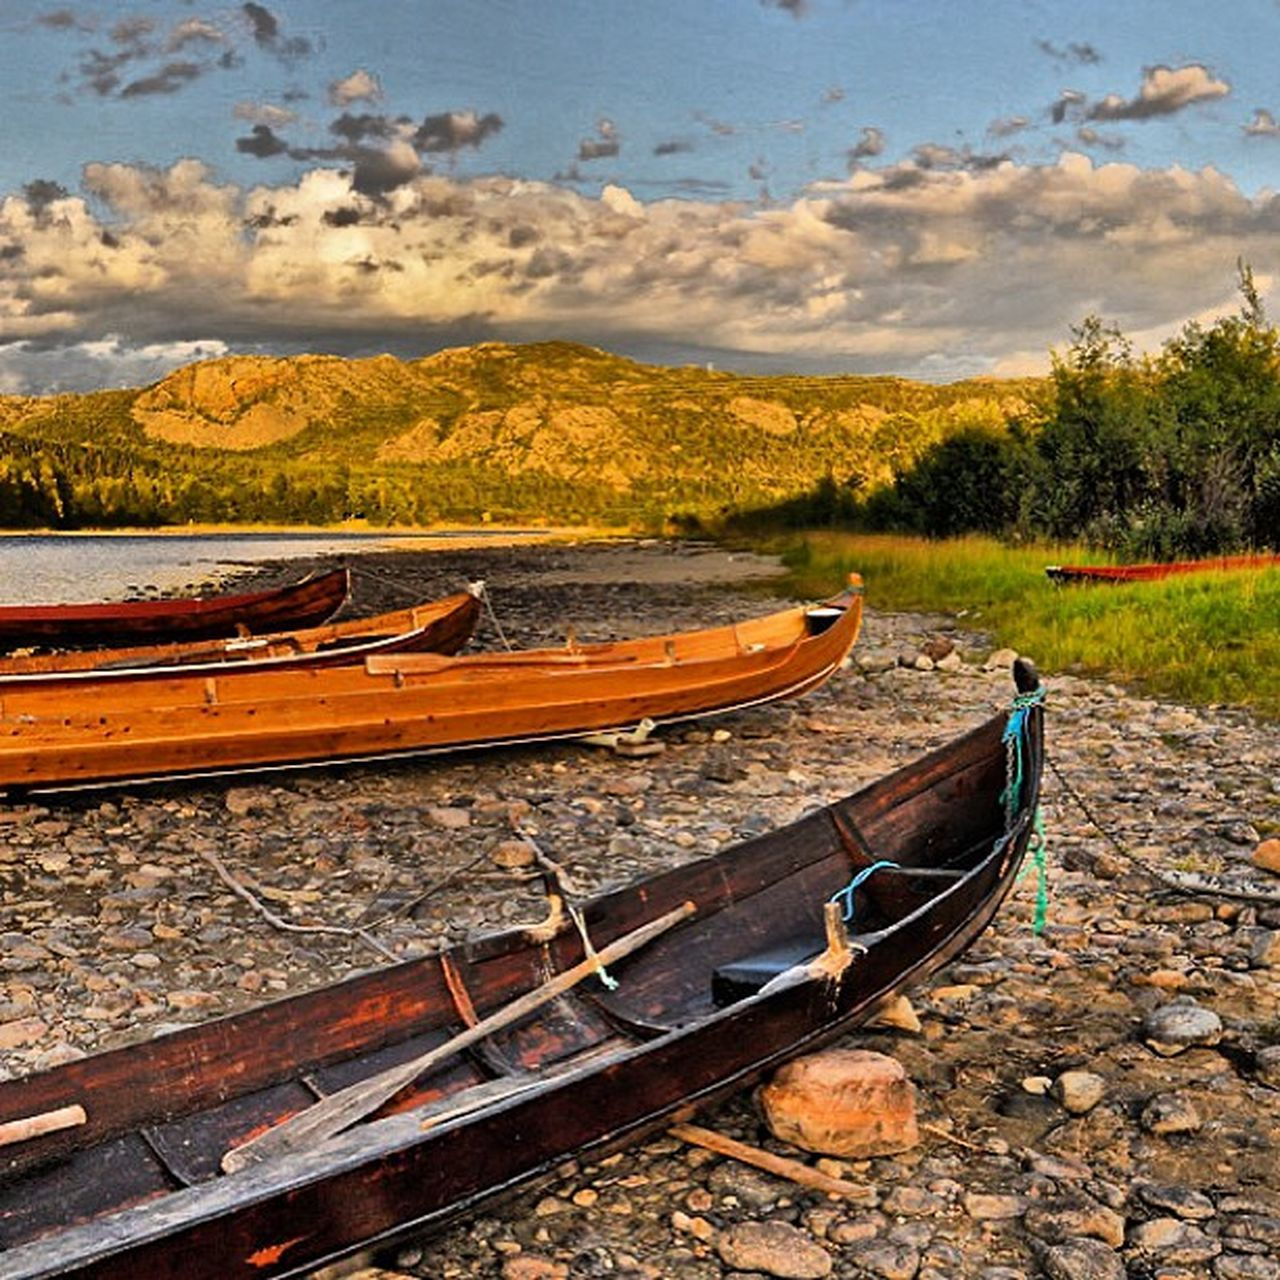 nautical vessel, moored, transportation, wood - material, mode of transport, cloud - sky, water, sky, nature, no people, beauty in nature, outdoors, scenics, canoe, beach, rowboat, day, sea, landscape, mountain, oar, kayak, tree, outrigger